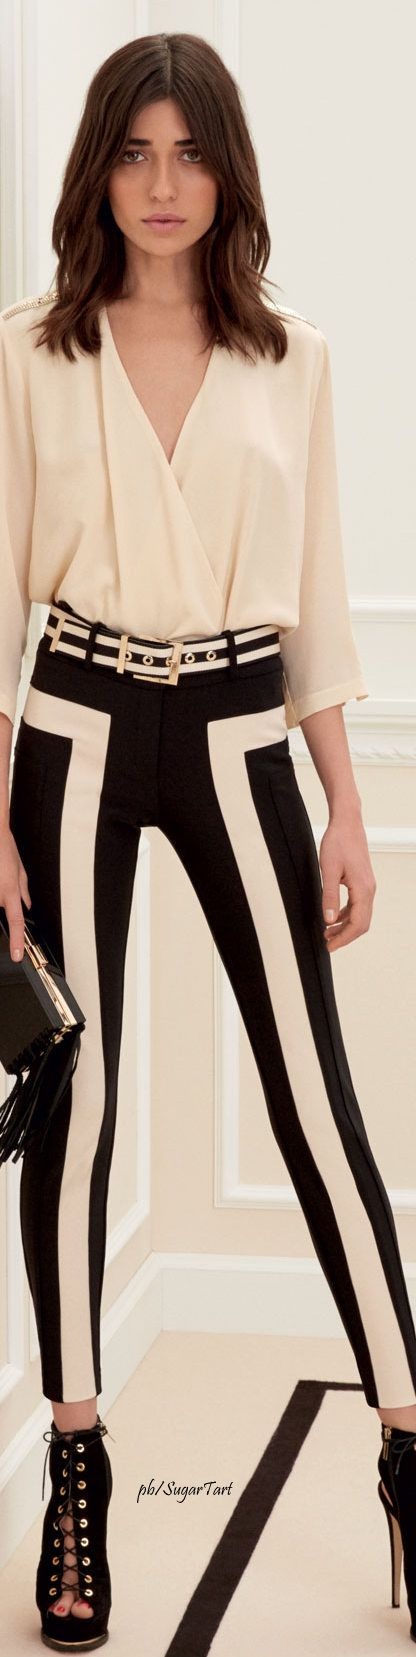 Elisabetta Franchi S/S 2016 LookBook. What a cool pair of pants!